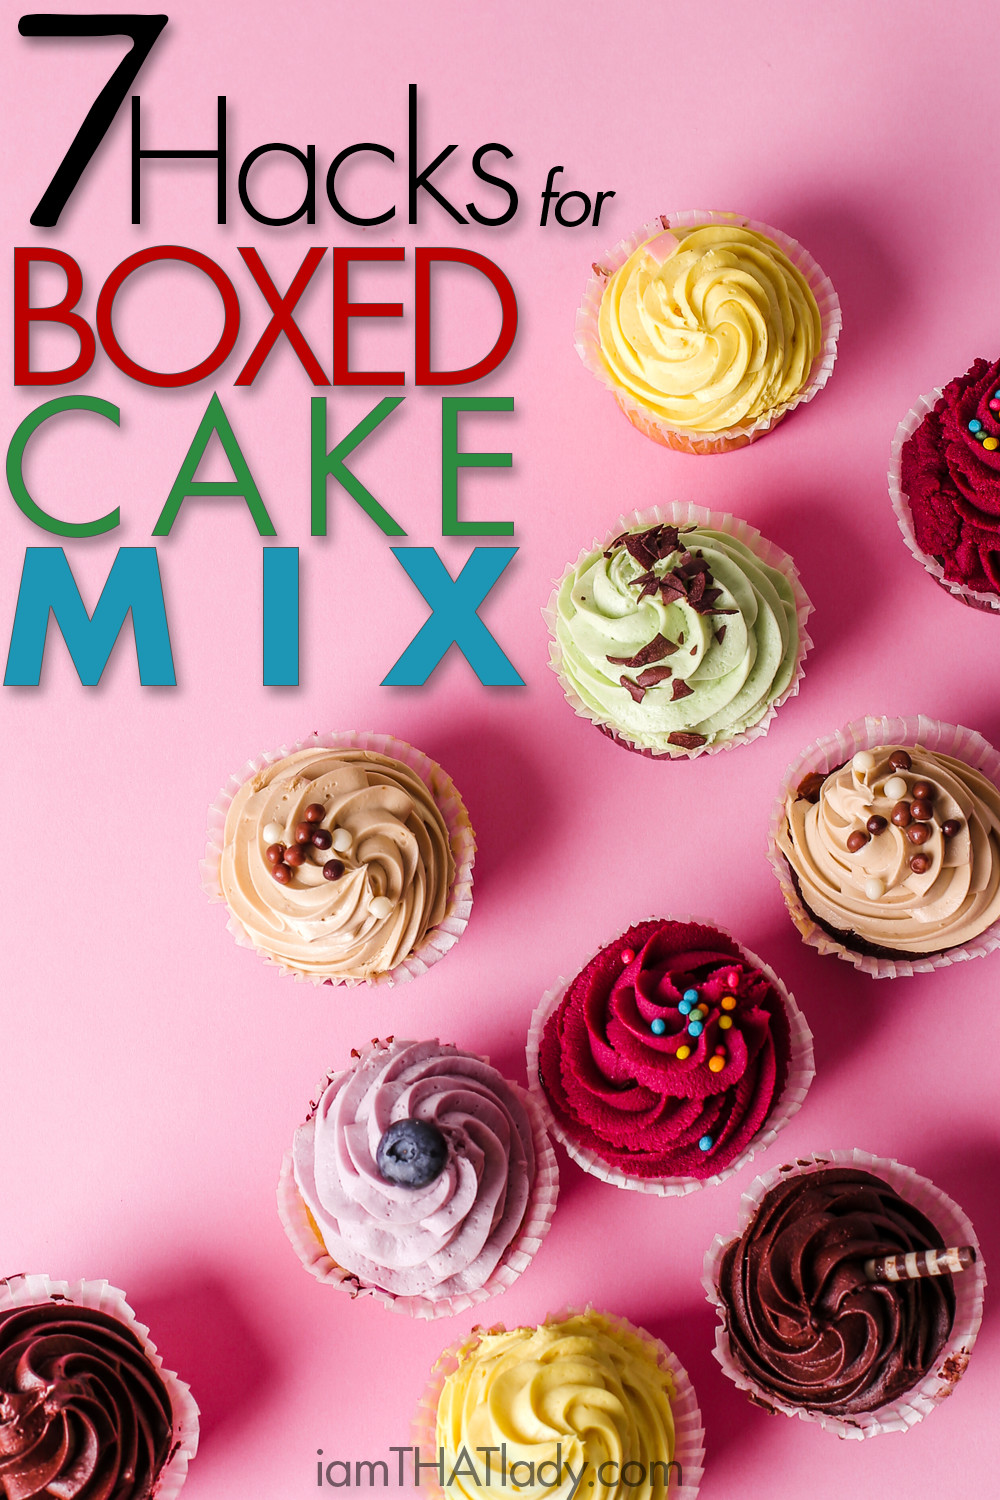 You have got to check out these 7 hacks to dress up boring old boxed cake mix! No one will ever know!